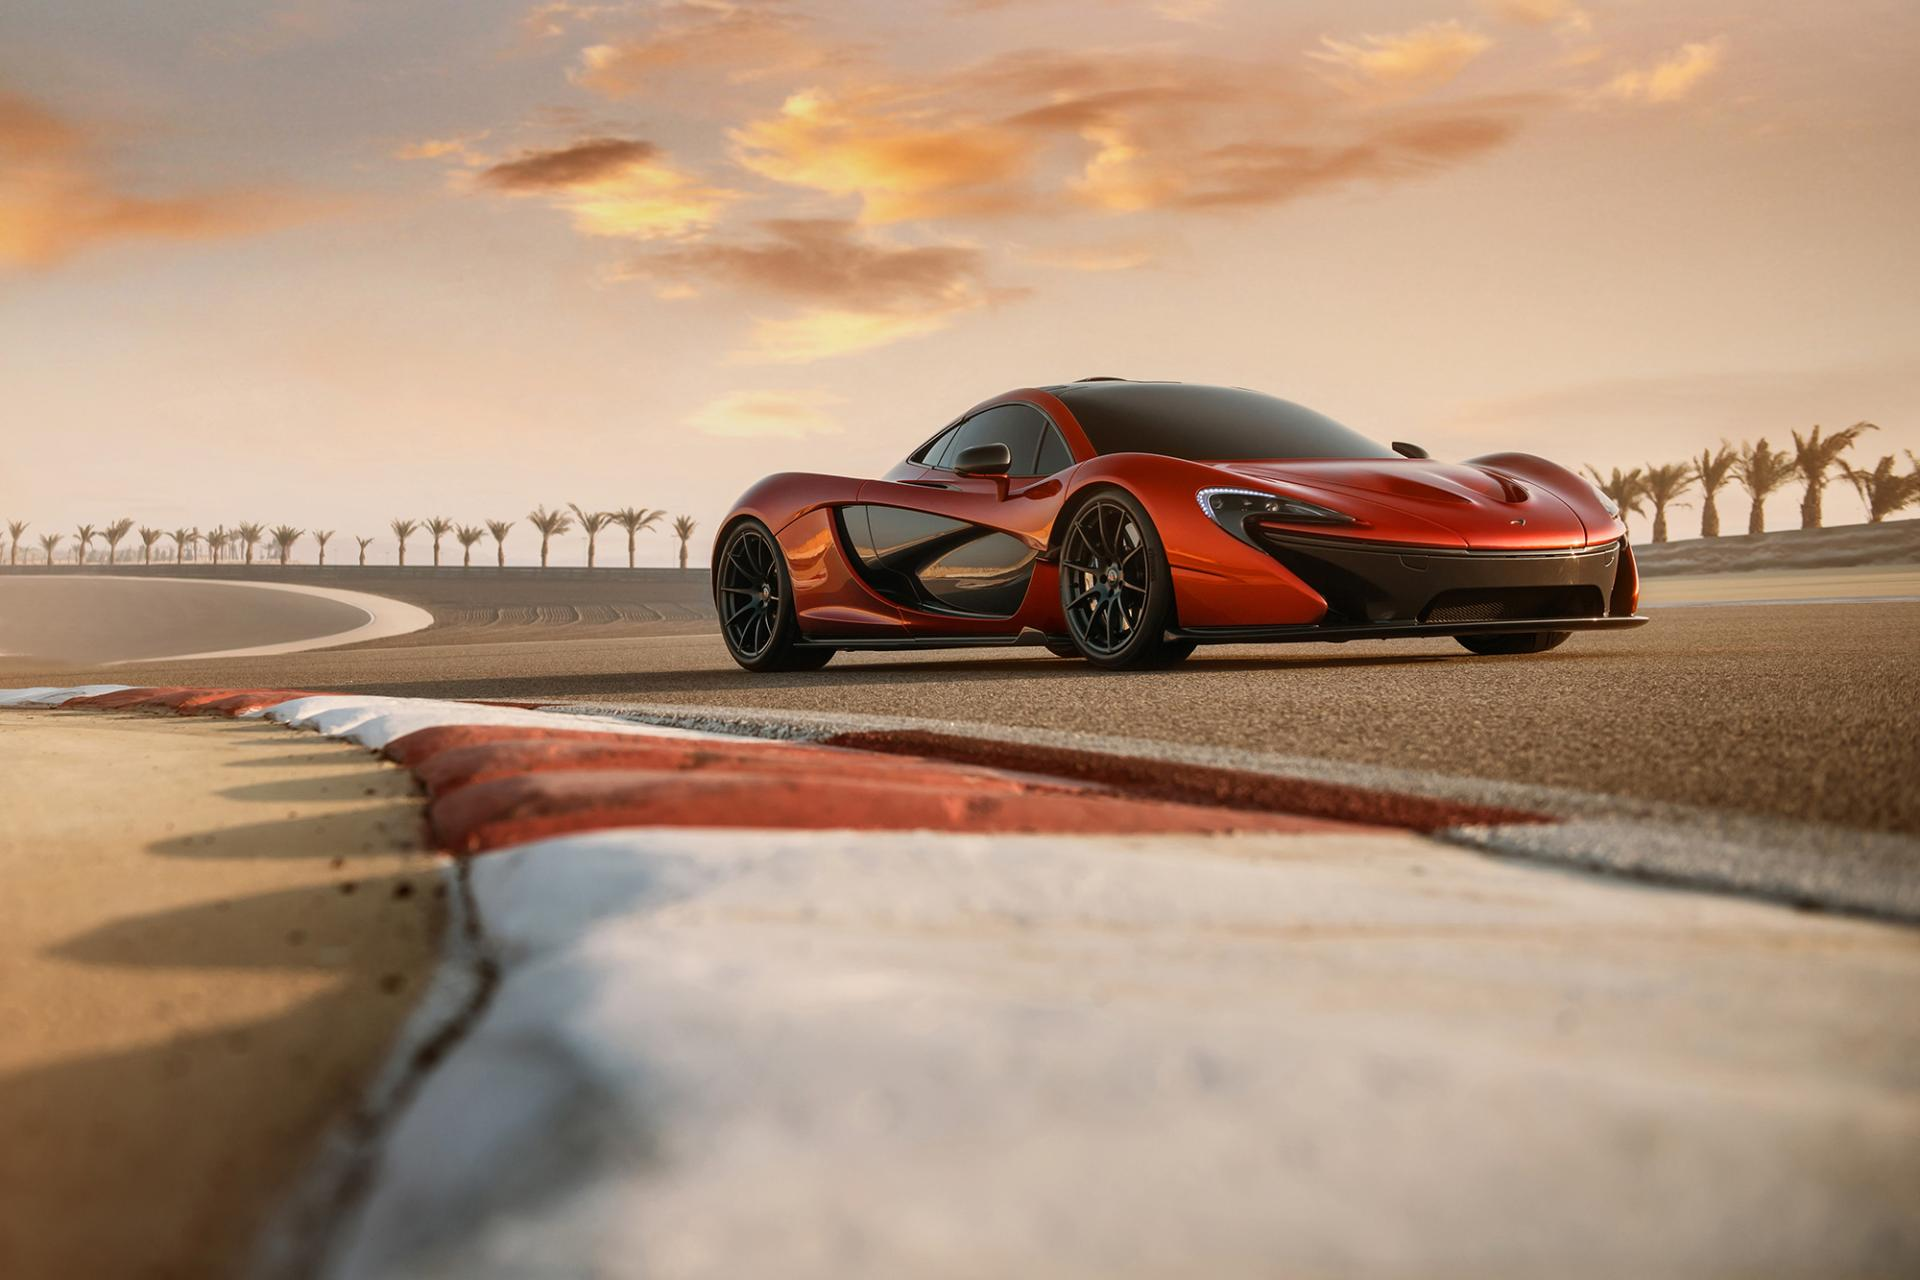 2014 McLaren P1 News and Information, Research, and History